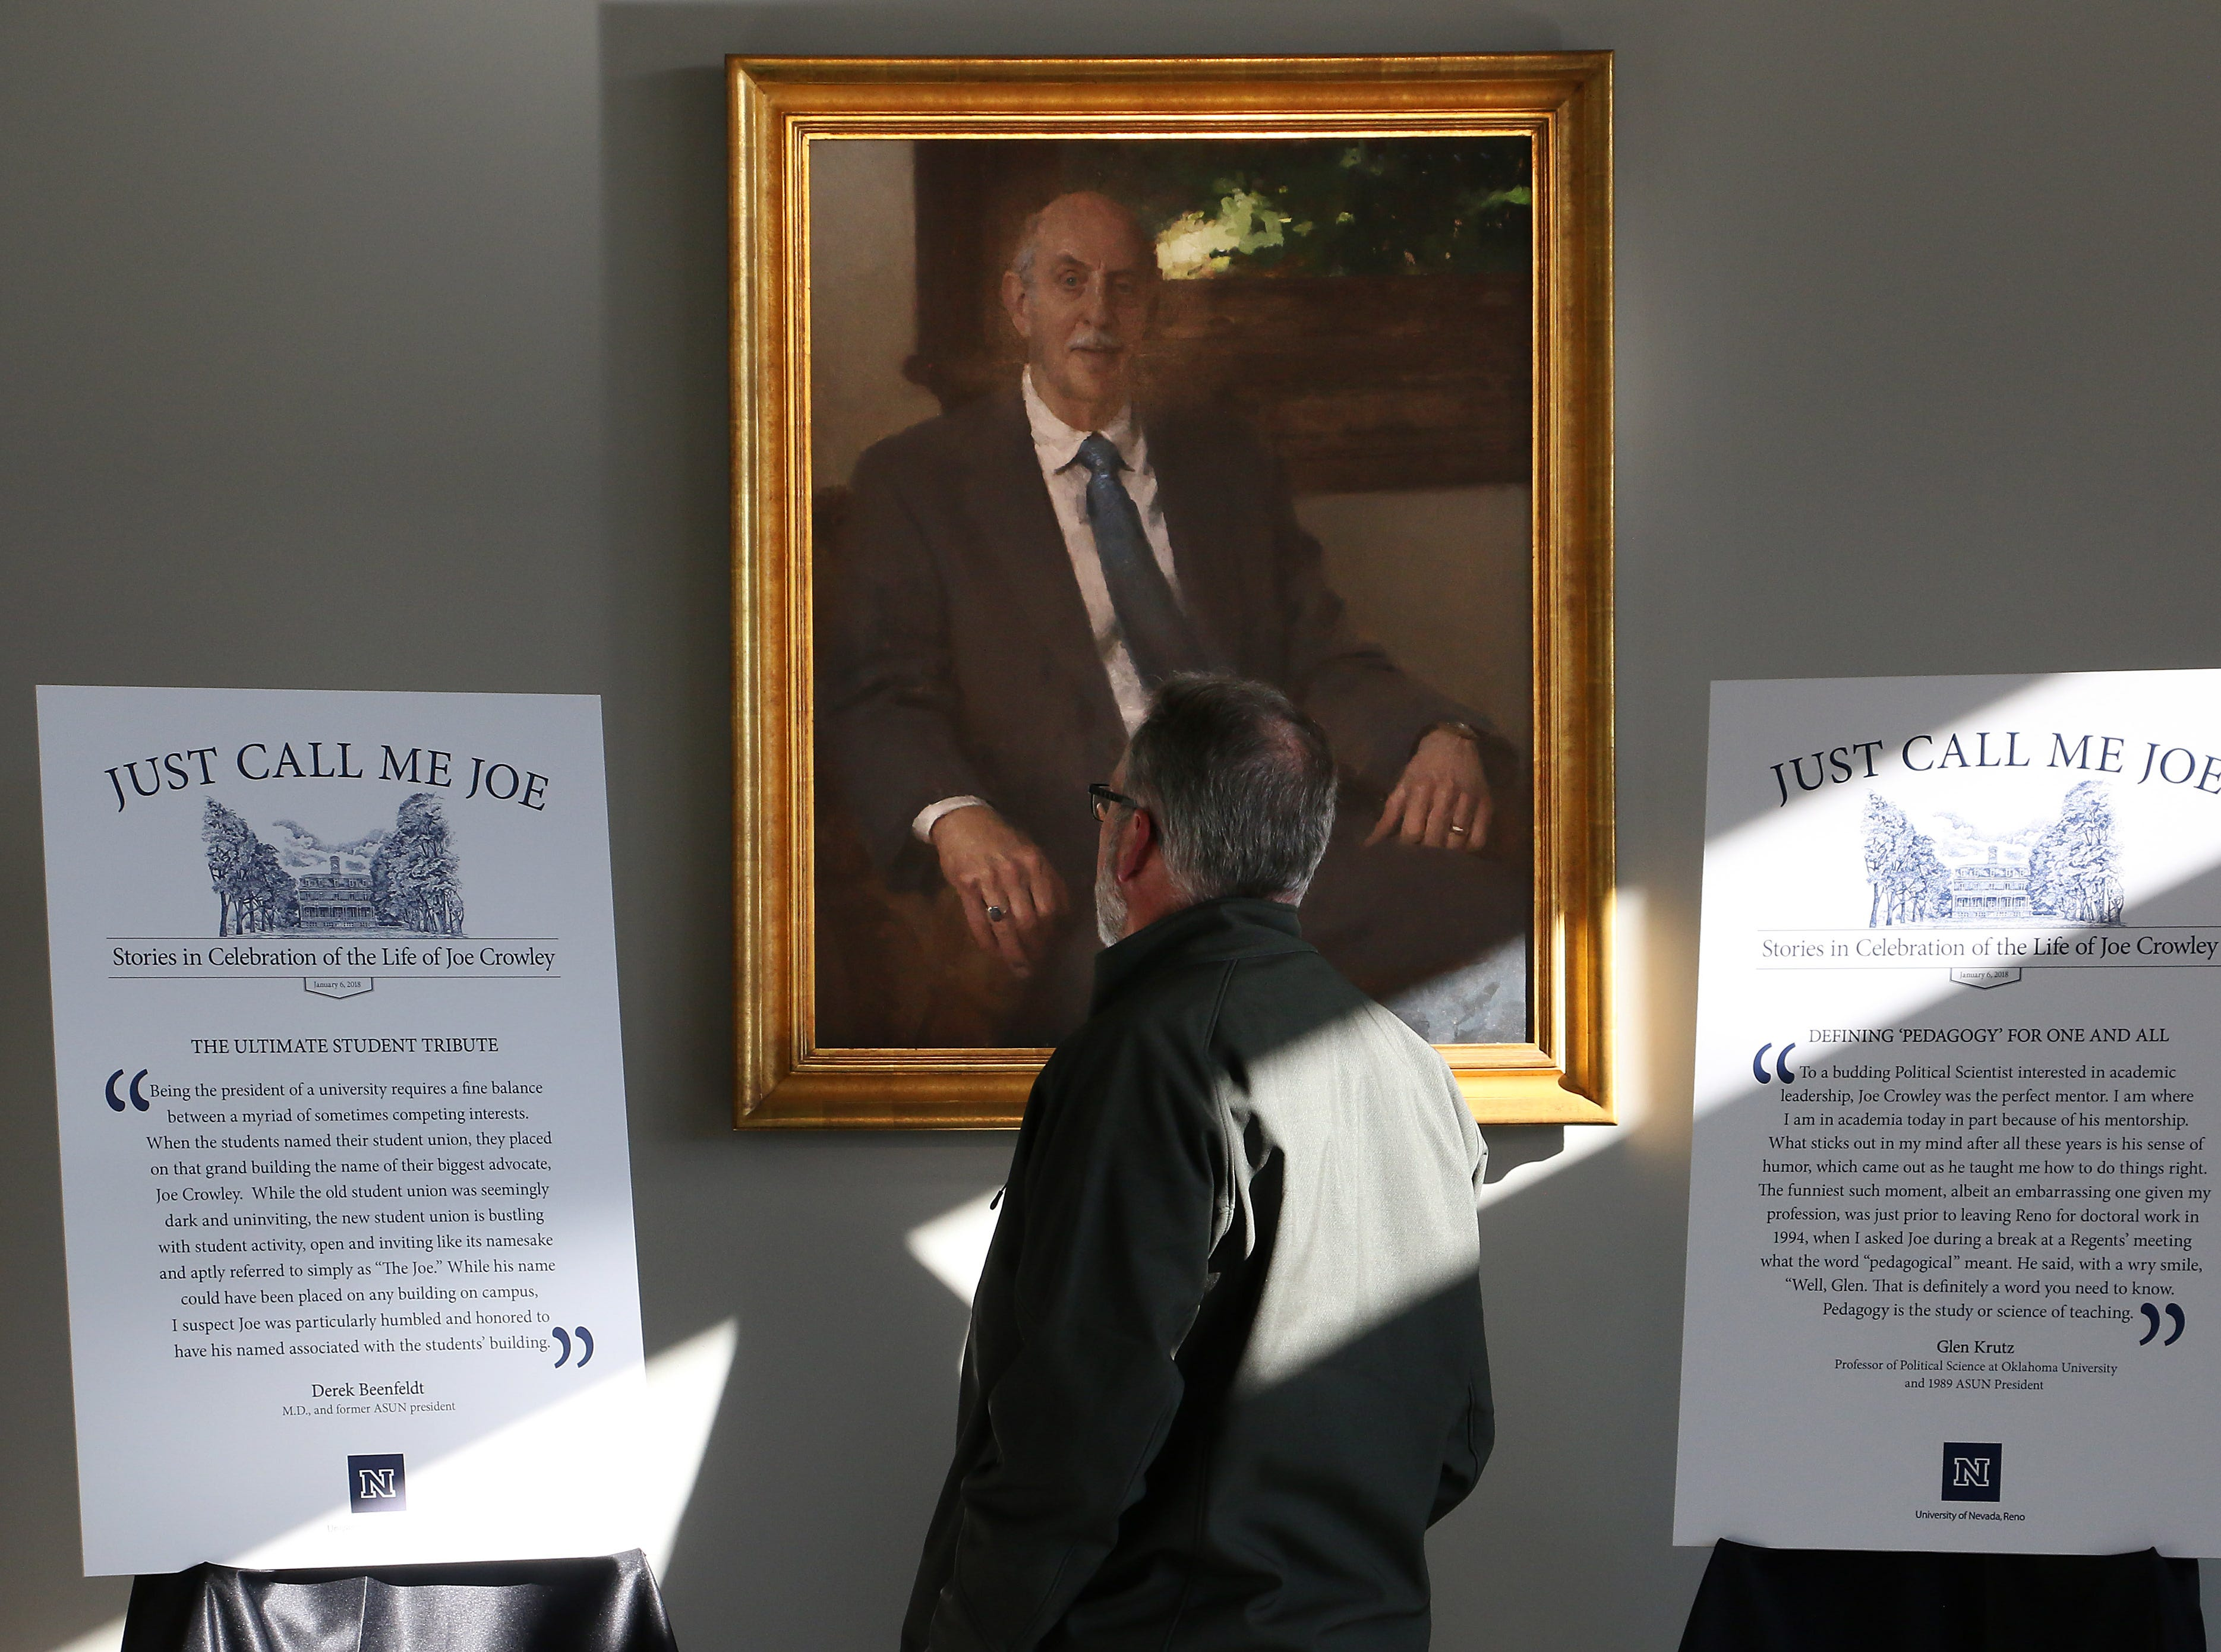 "An attendee stands below a portrait of Joe Crowley during the campus memorial service in honor of Emeritus President Joe Crowley in the Joe Crowley Student Union on the campus of the University of Nevada, Reno on Jan. 6, 2018. The service was called ""Just Call Me Joe: Stories in Celebration of the Life of Joe Crowley."""